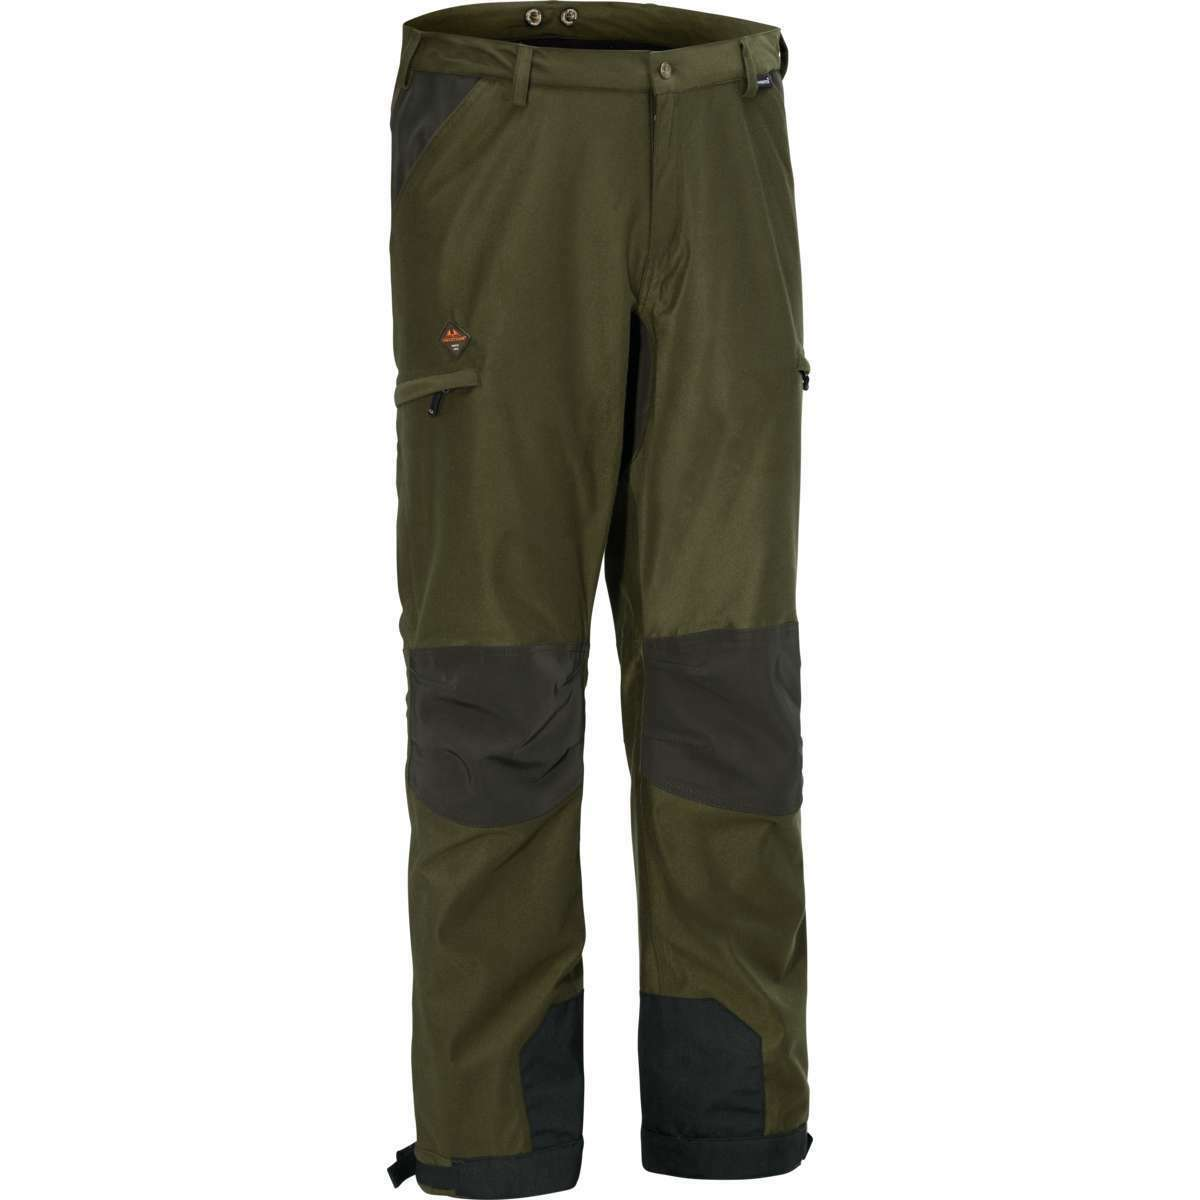 SWEDTEAM Jagdhose ULTRA LIGHT PRO M  100041-420 - wasserdicht